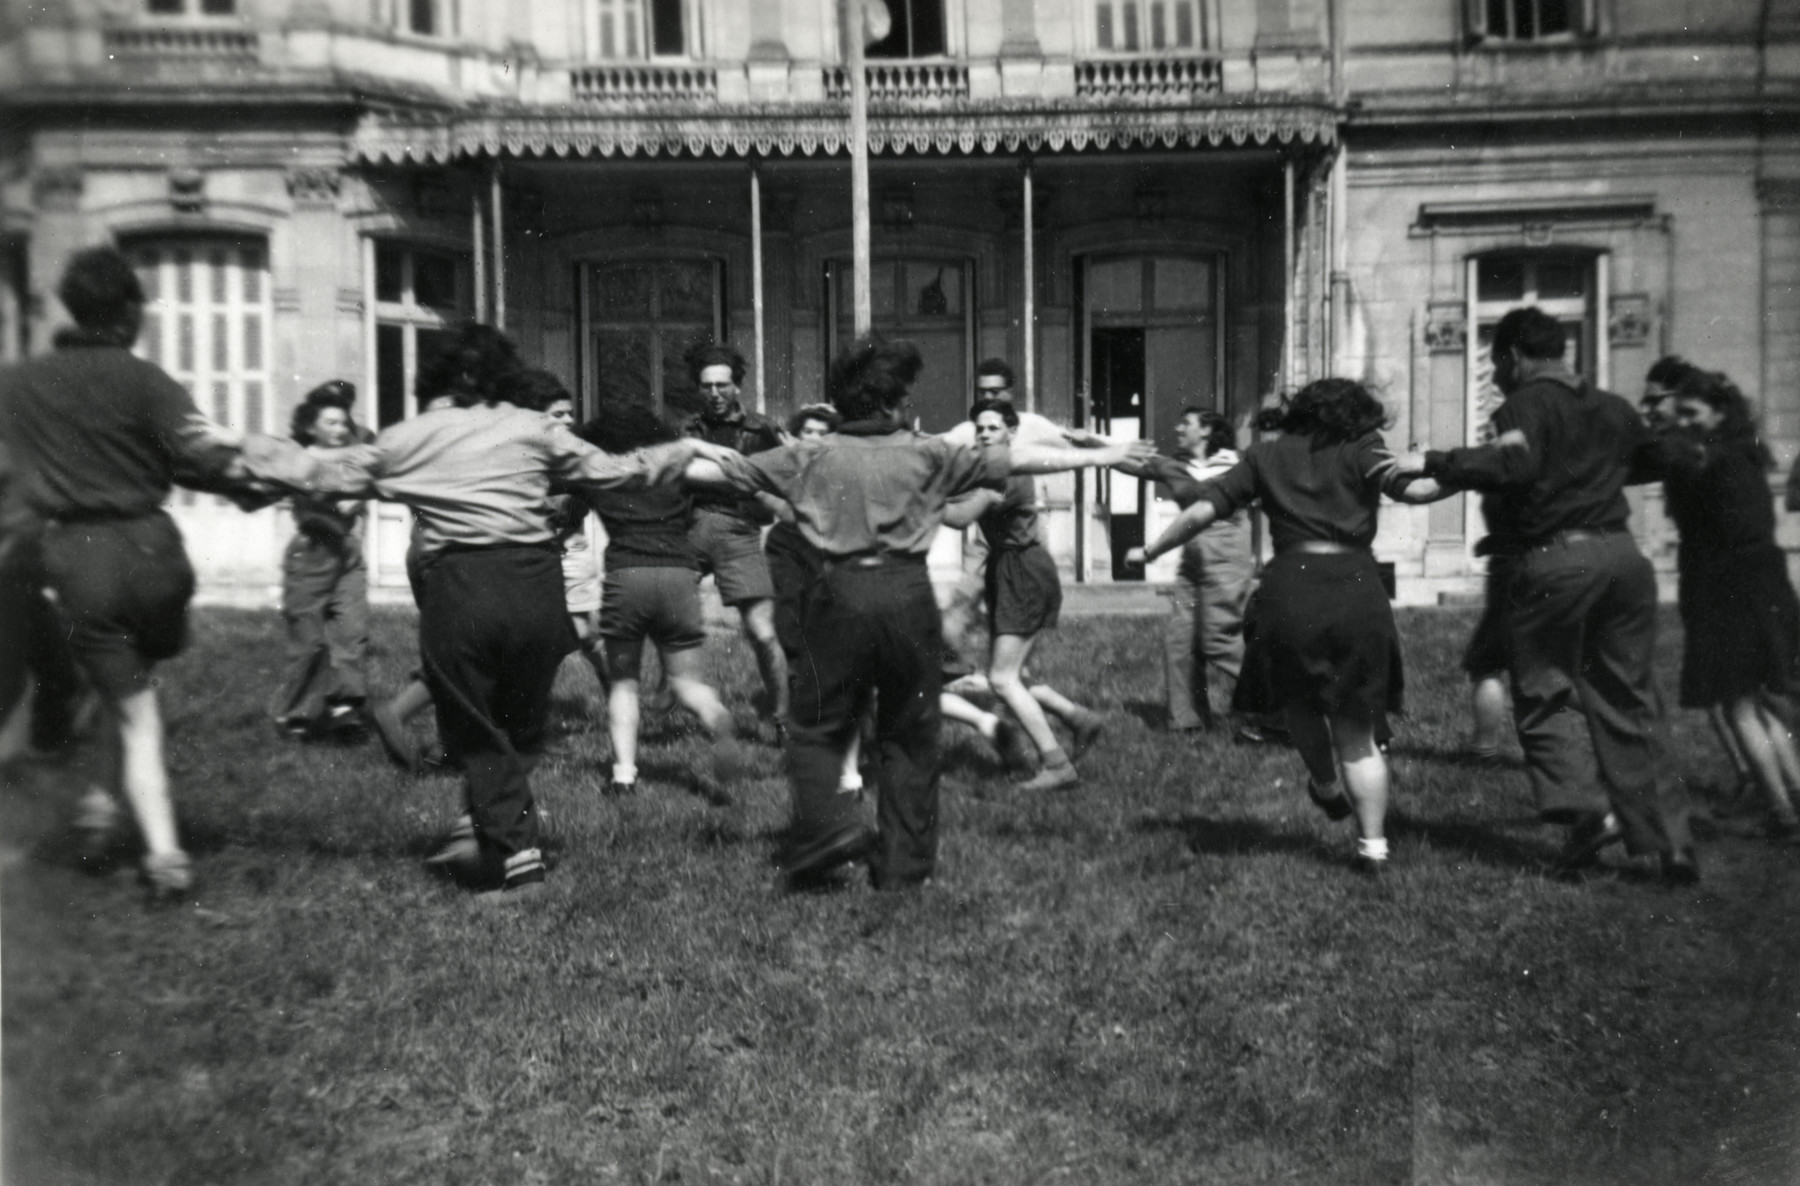 Zionist youth belonging to the Kvutza Borochov dance a horah on the lawn of their hachshara outside of Paris.